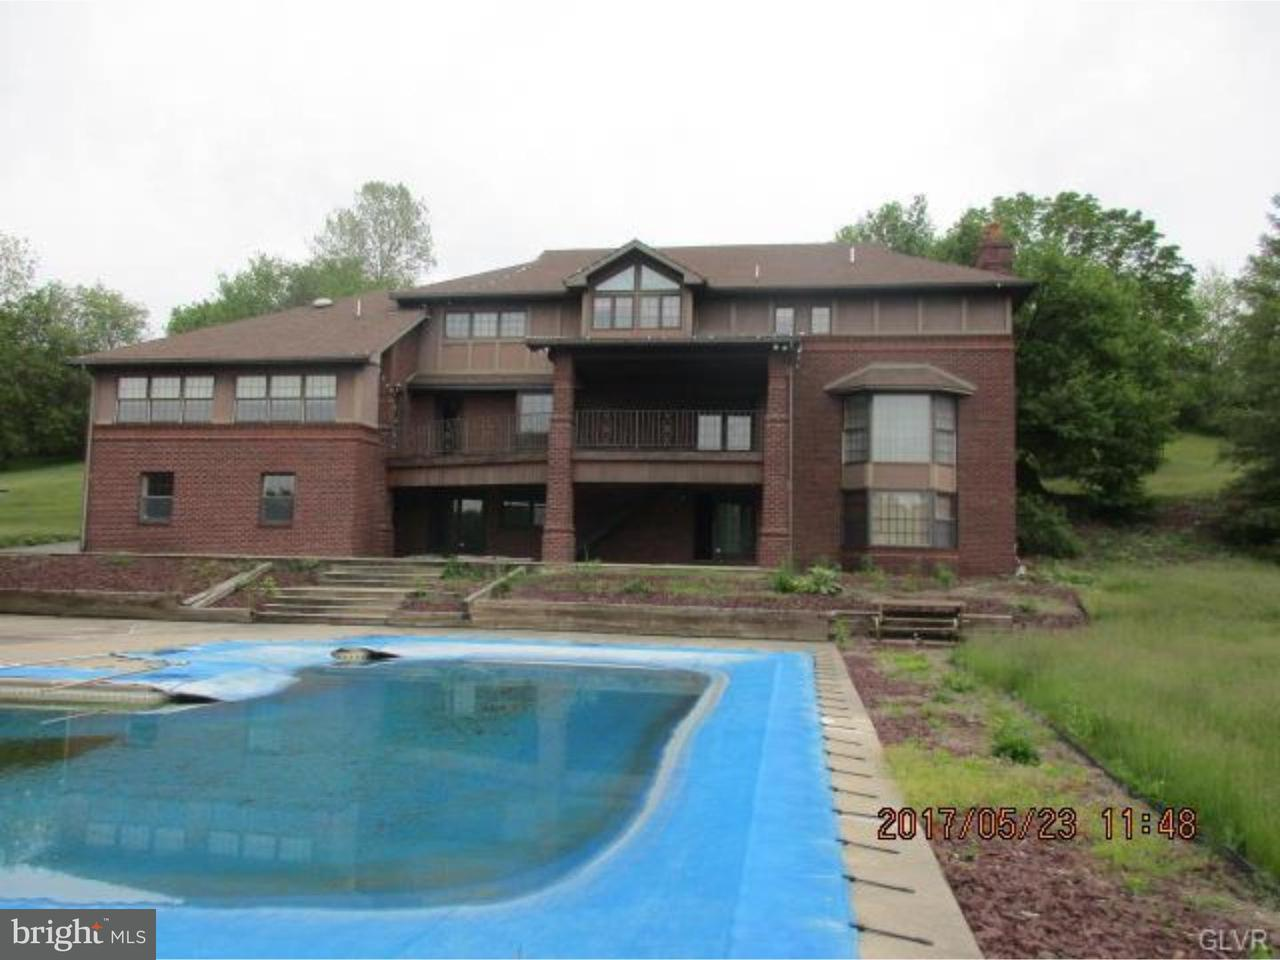 Single Family Home for Sale at 5 WALKING PURCHASE Circle Northampton, Pennsylvania 18067 United States